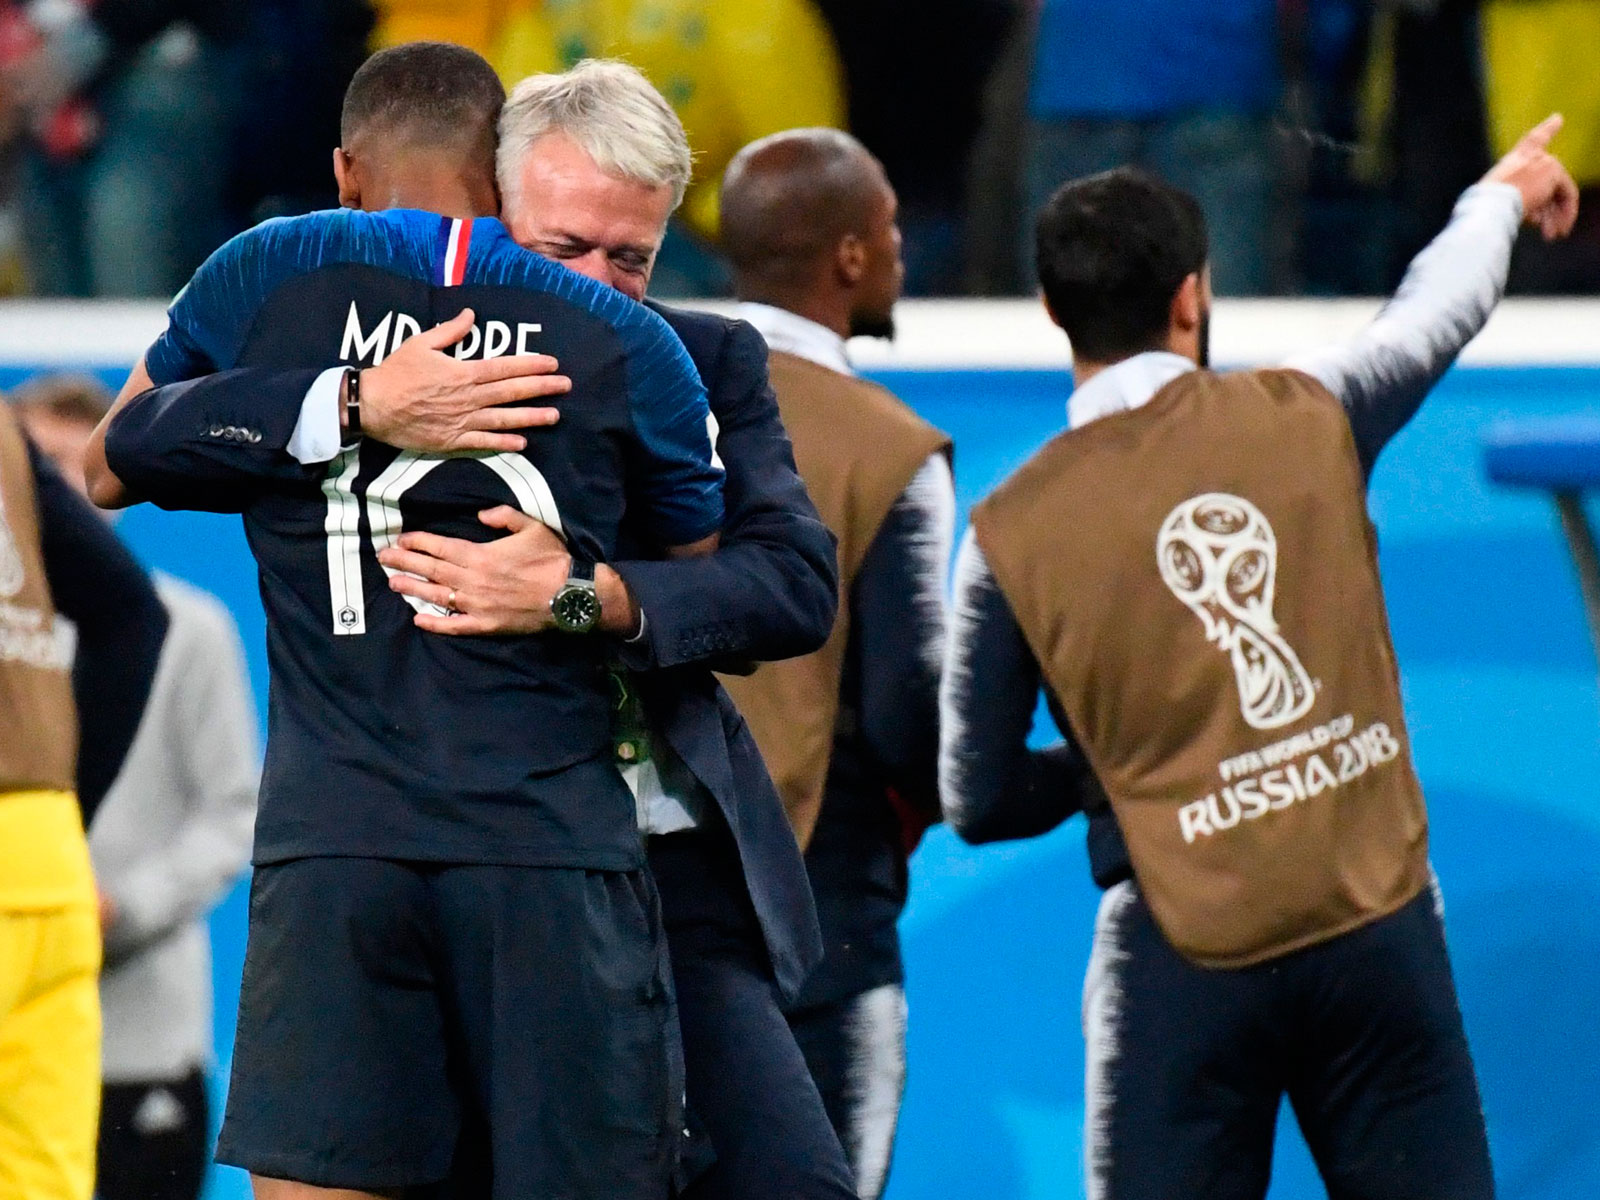 Kylian Mbappe and Didier Deschamps hug after France's win over Belgium in the World Cup semifinals